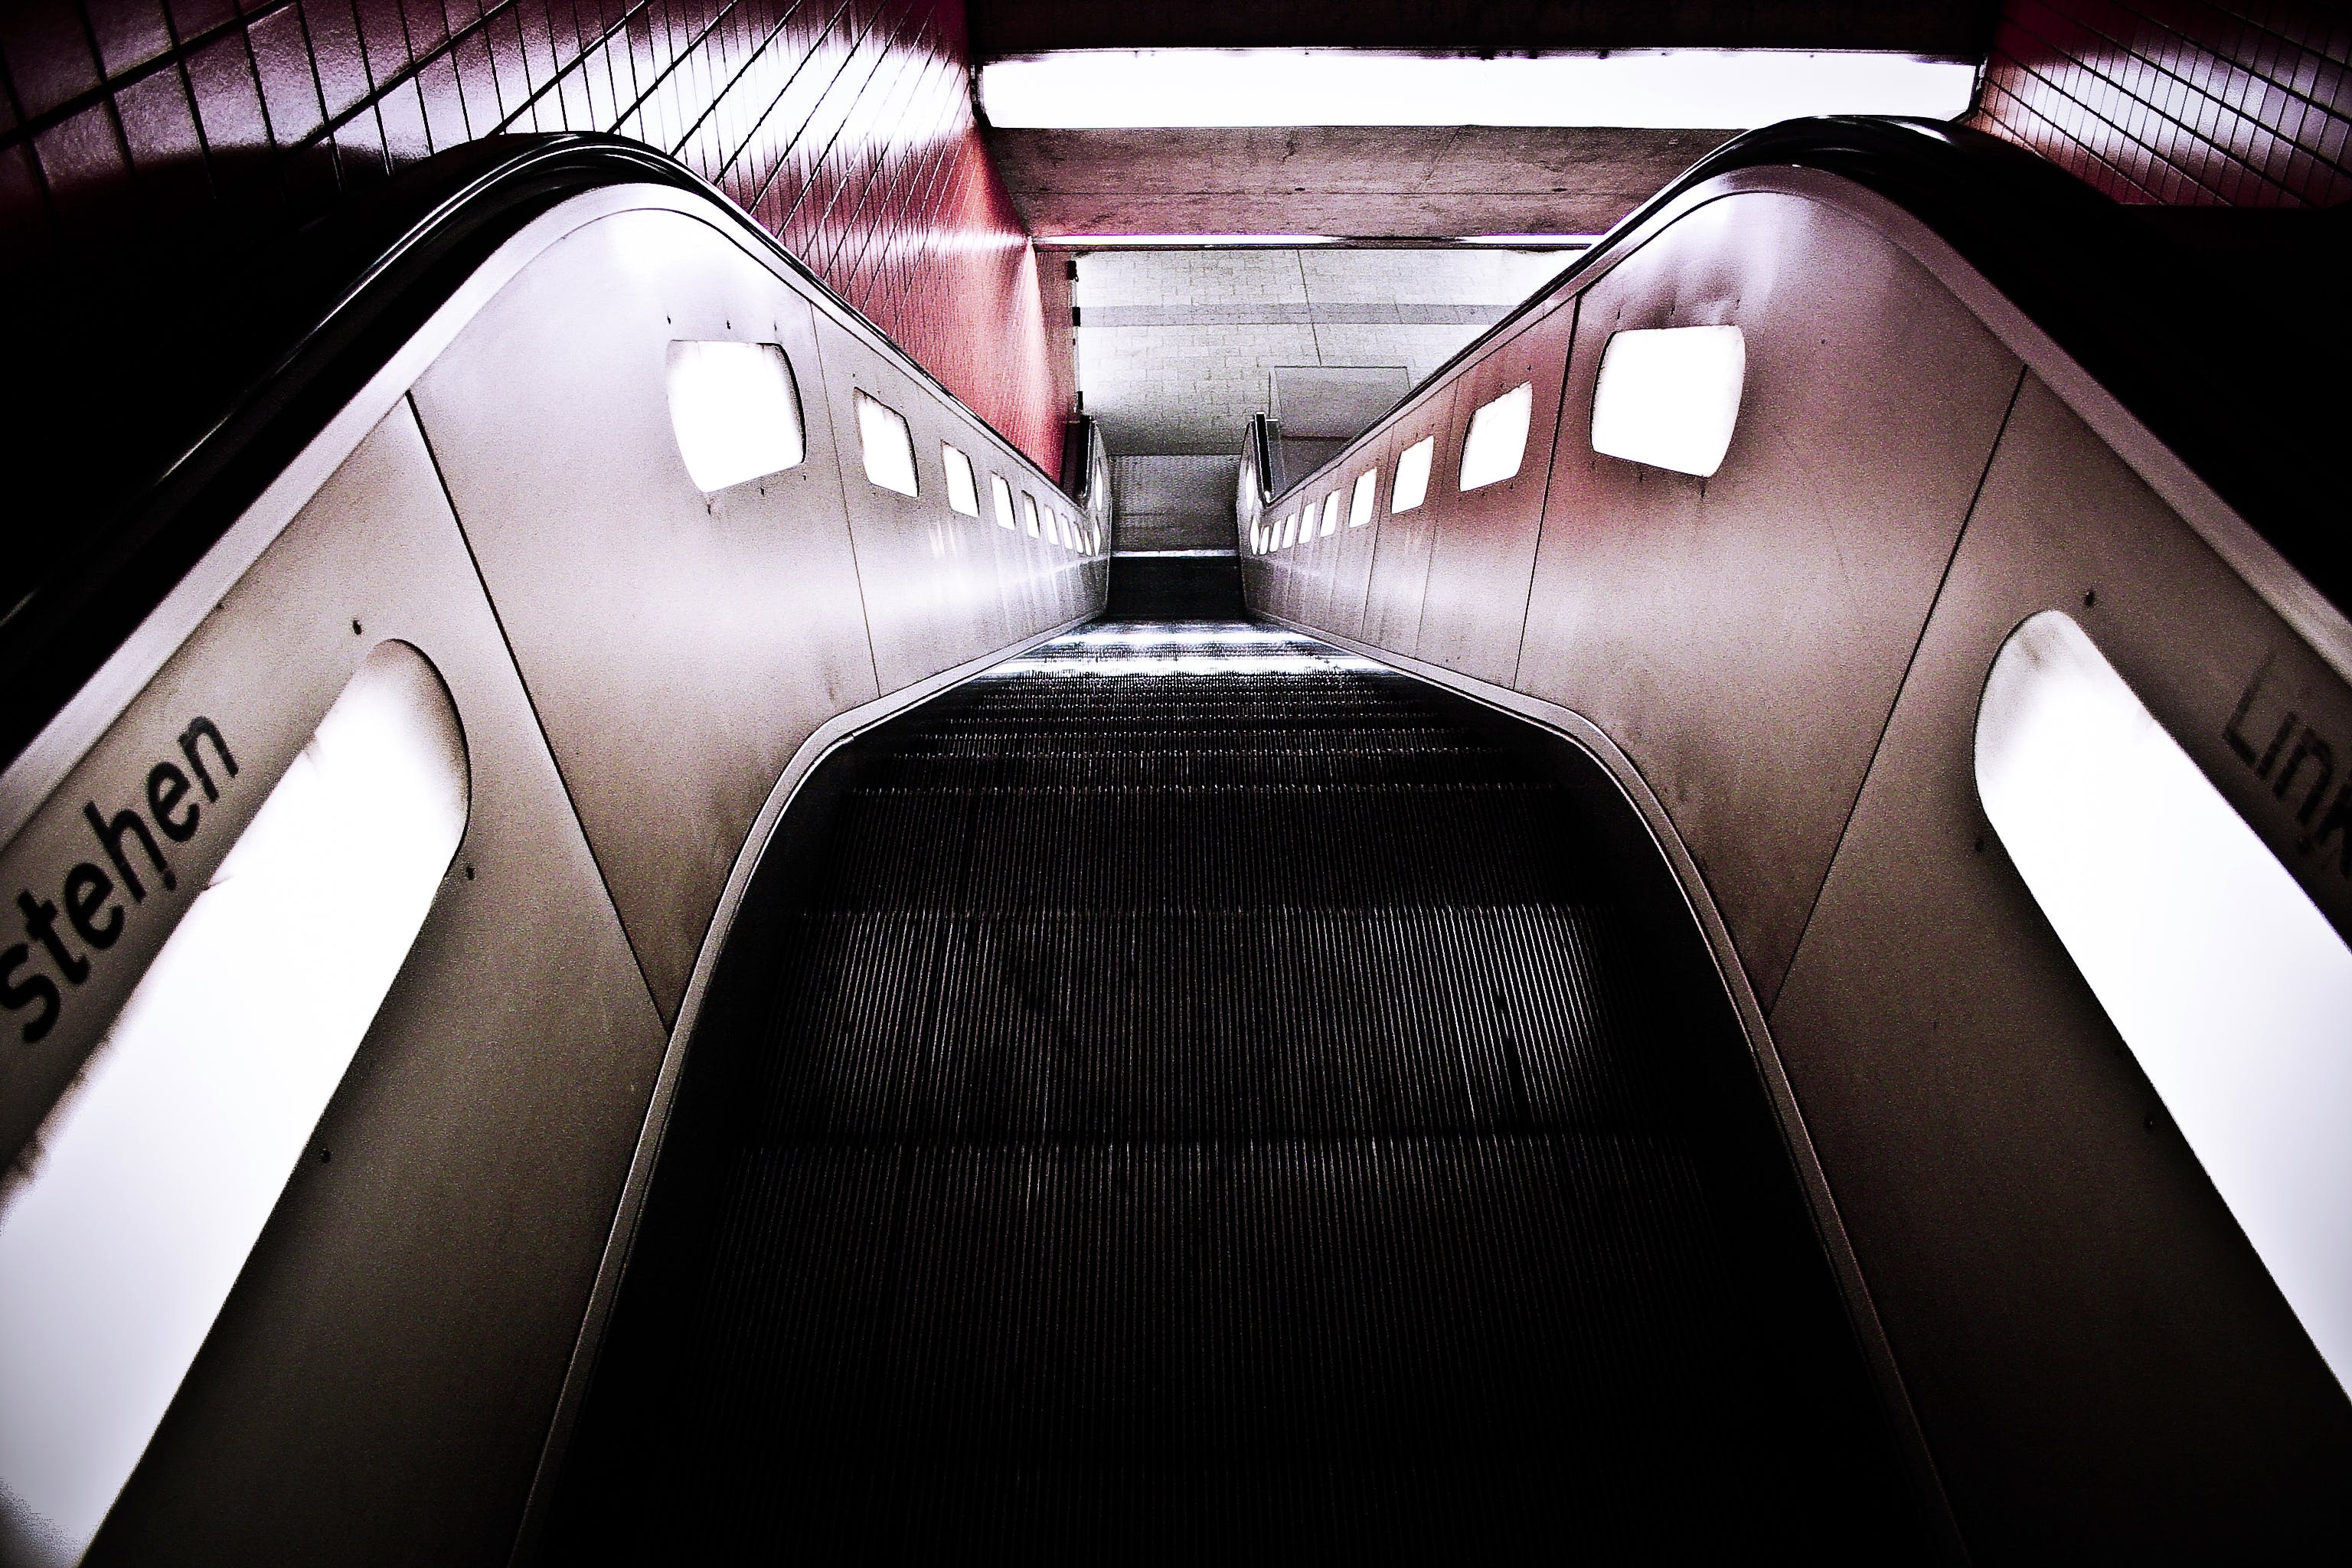 Black Escalator Near Red Wall Tiles